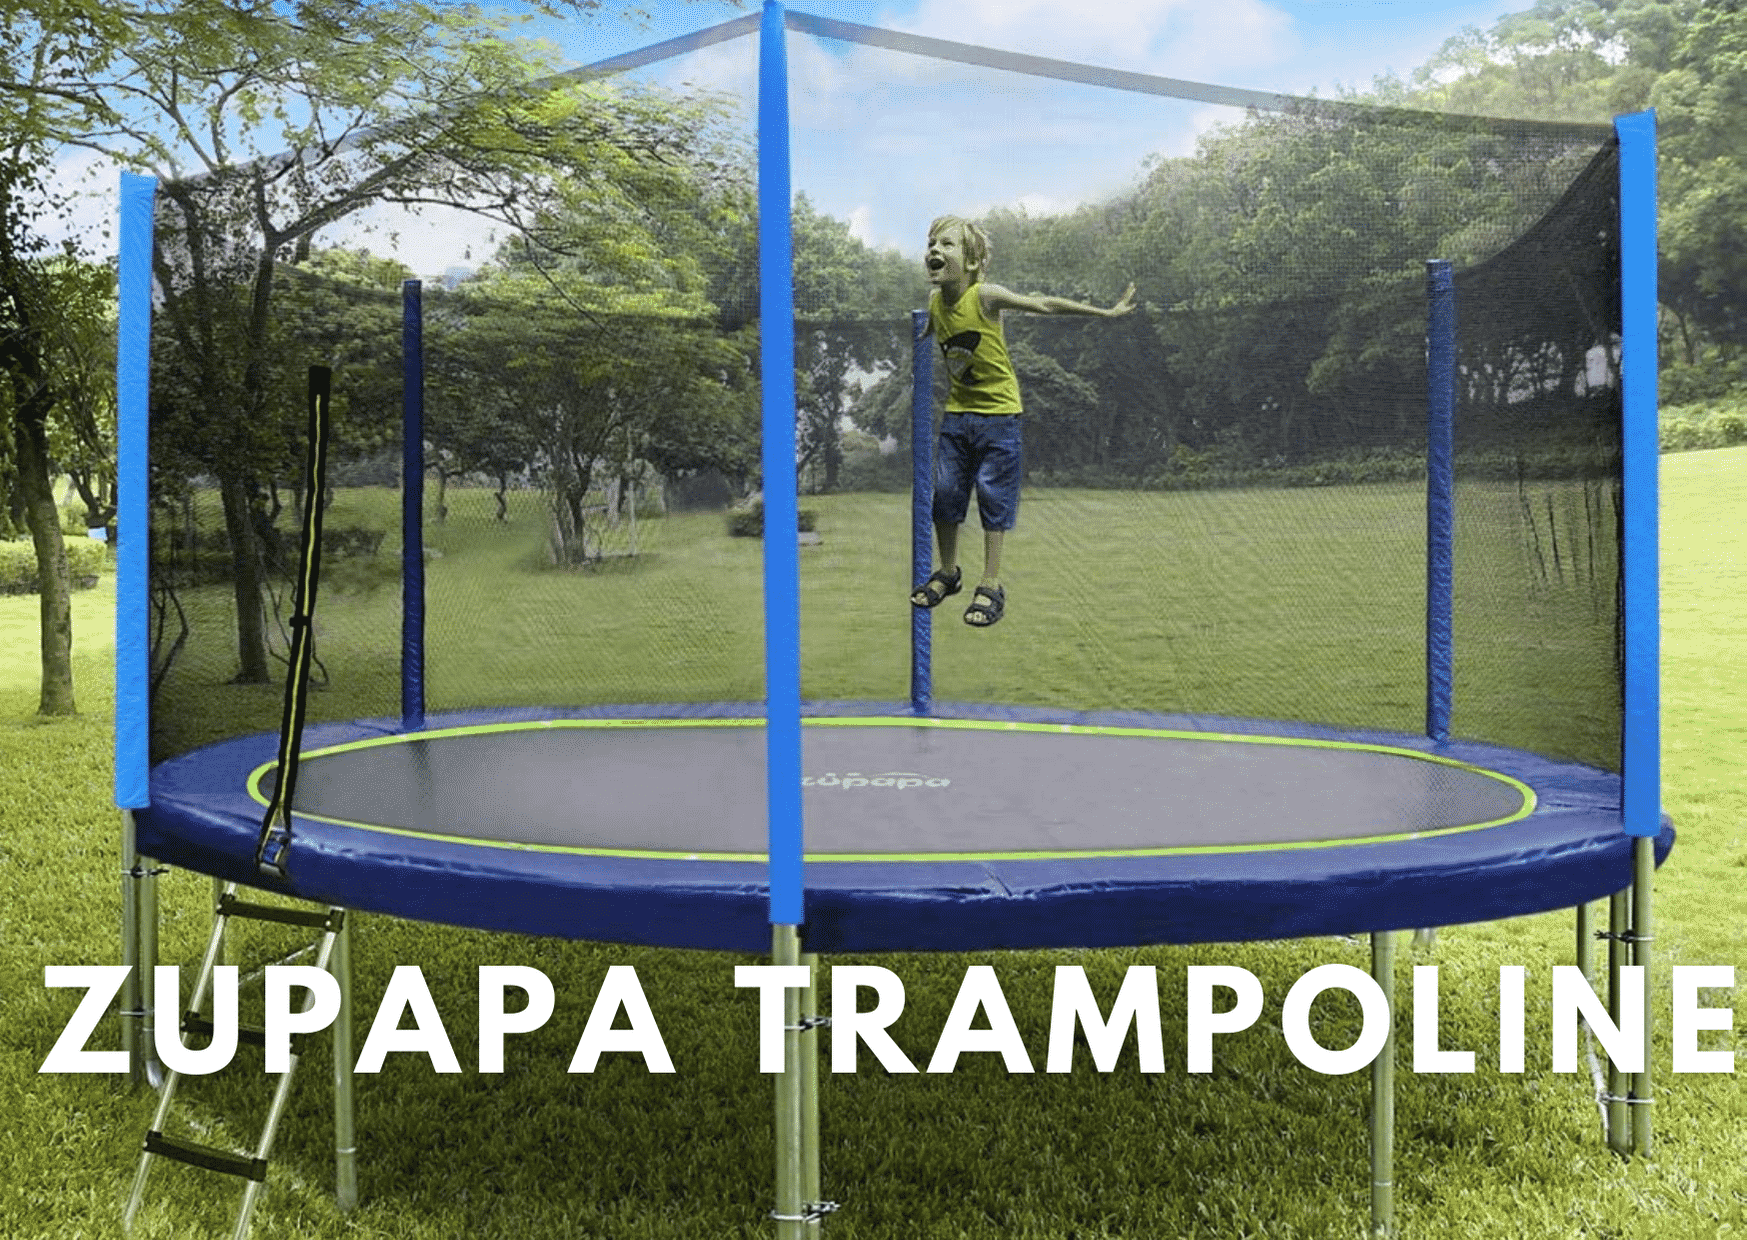 The Best Zupapa Trampoline Reviews in 2021